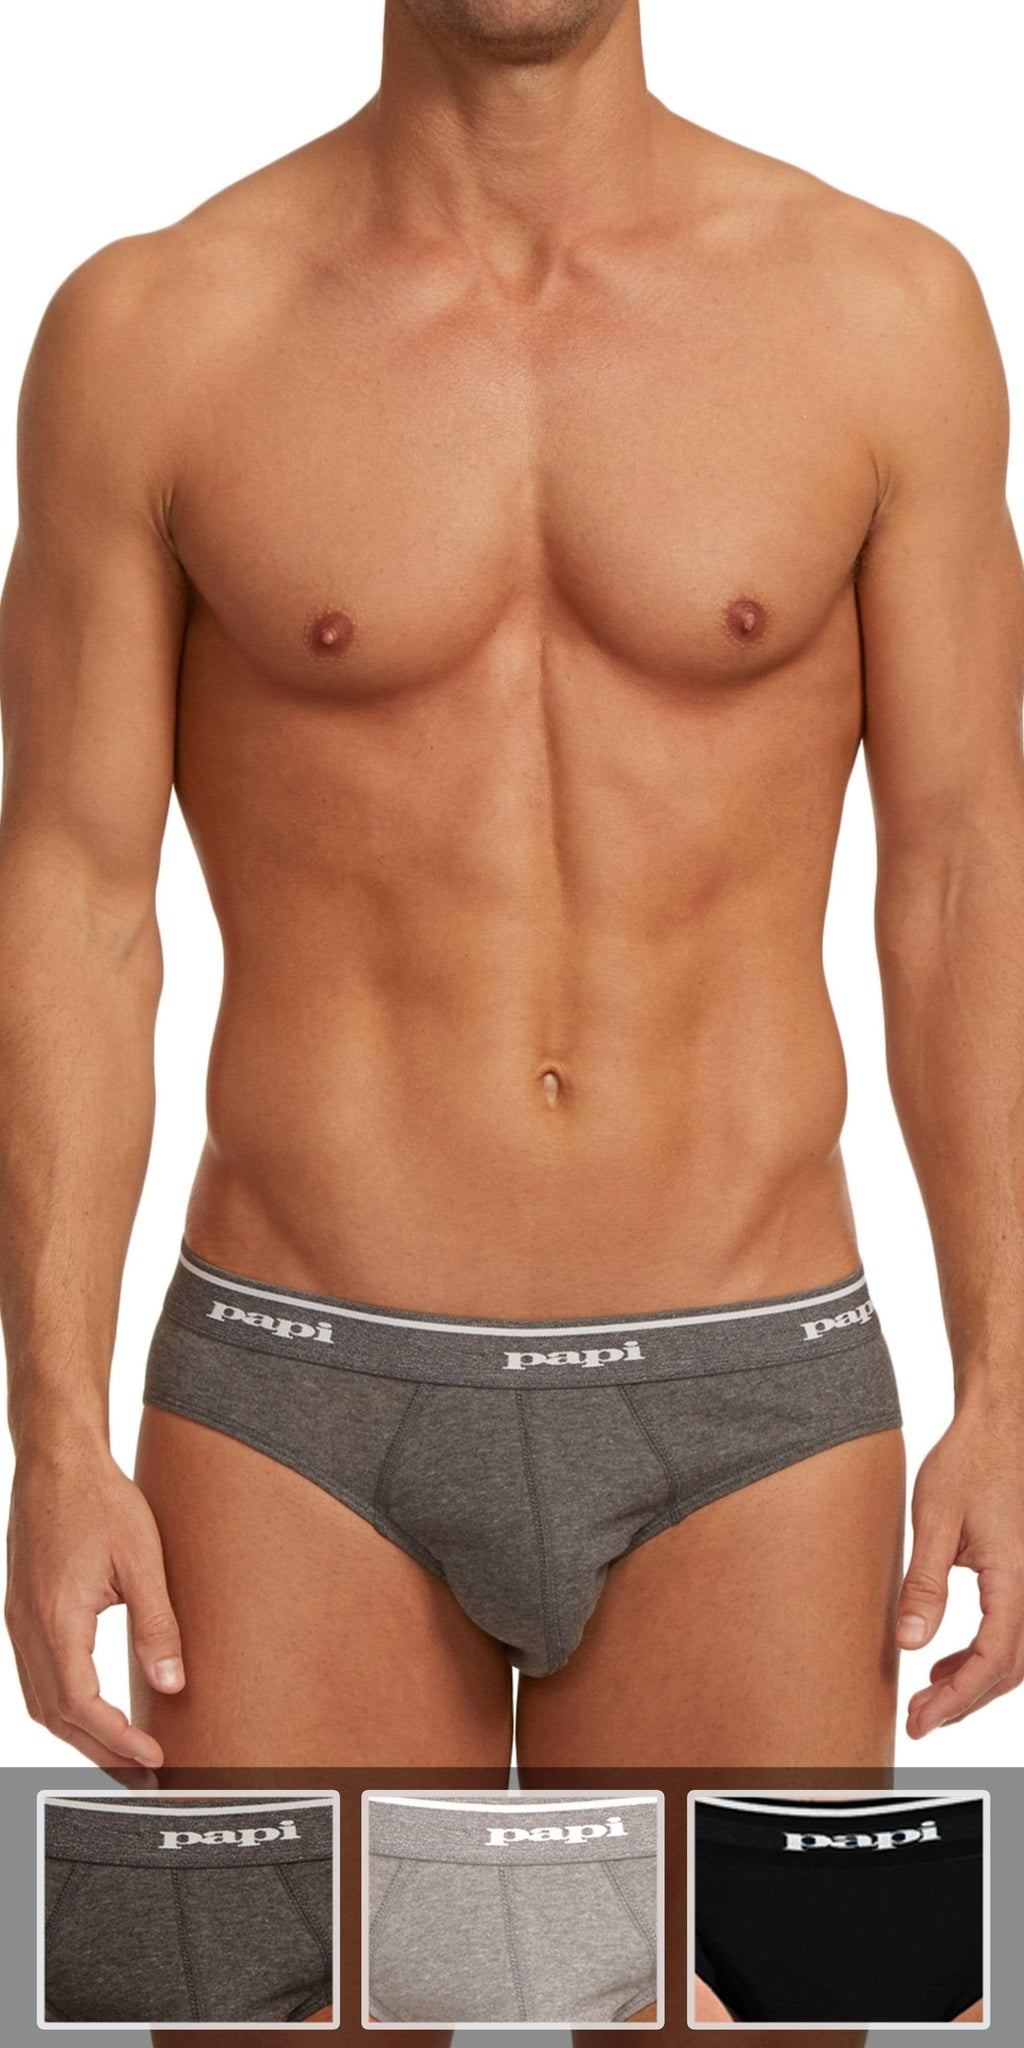 Papi 3-Pack 1X1 Rib Low Rise Brief In Black-Charcoal-Gray